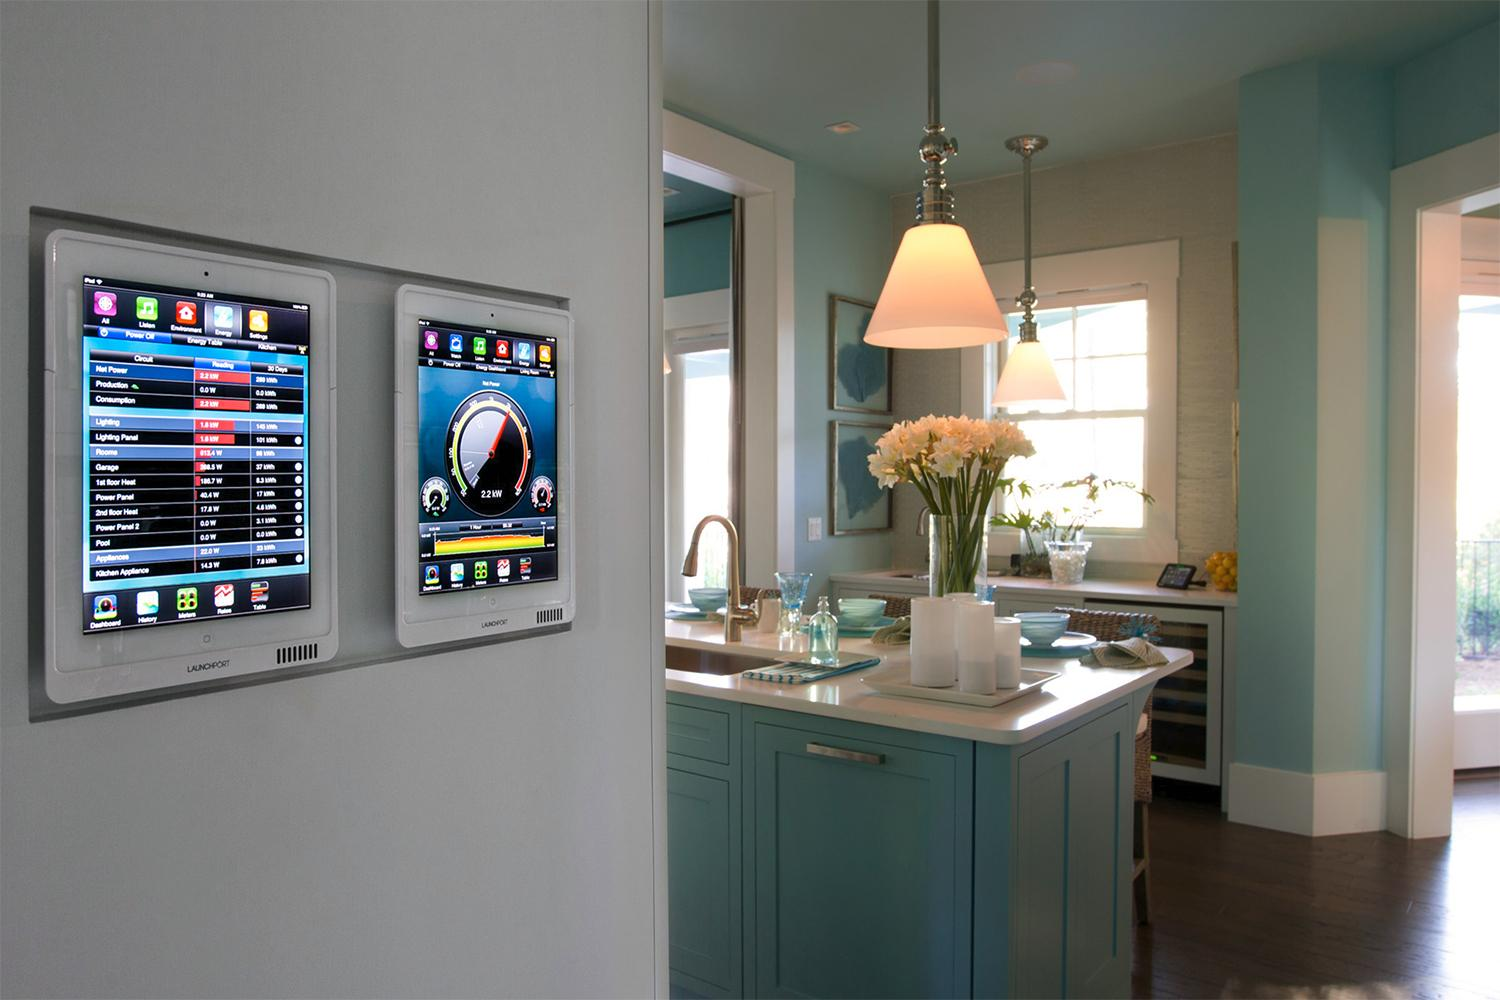 Home Smart Systems Alljoyn Promises To Unite The Smart Home Under One Common